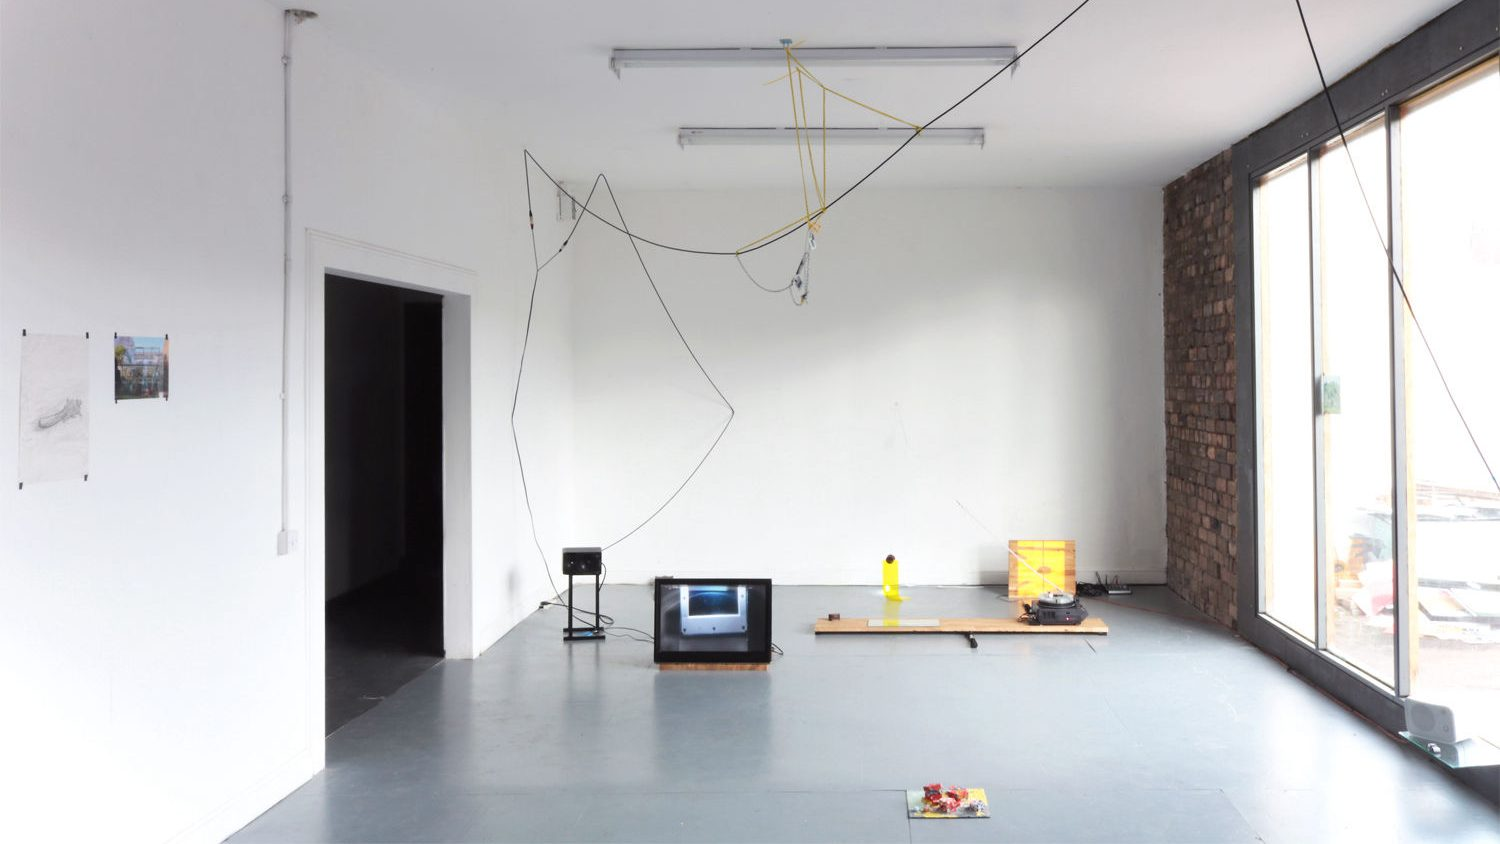 A room with a tall ceiling and white walls, a entrance from the left and a floor to ceiling window on the right, with brick surround. Within the room is an installation of objects, cables, wood, a gaming monitor, a slide projector and speakers. There is a small sculpture on the floor in the foreground, and to the left, in the foreground and on the wall, is a drawing and a photograph. This installation required both sound and video production.